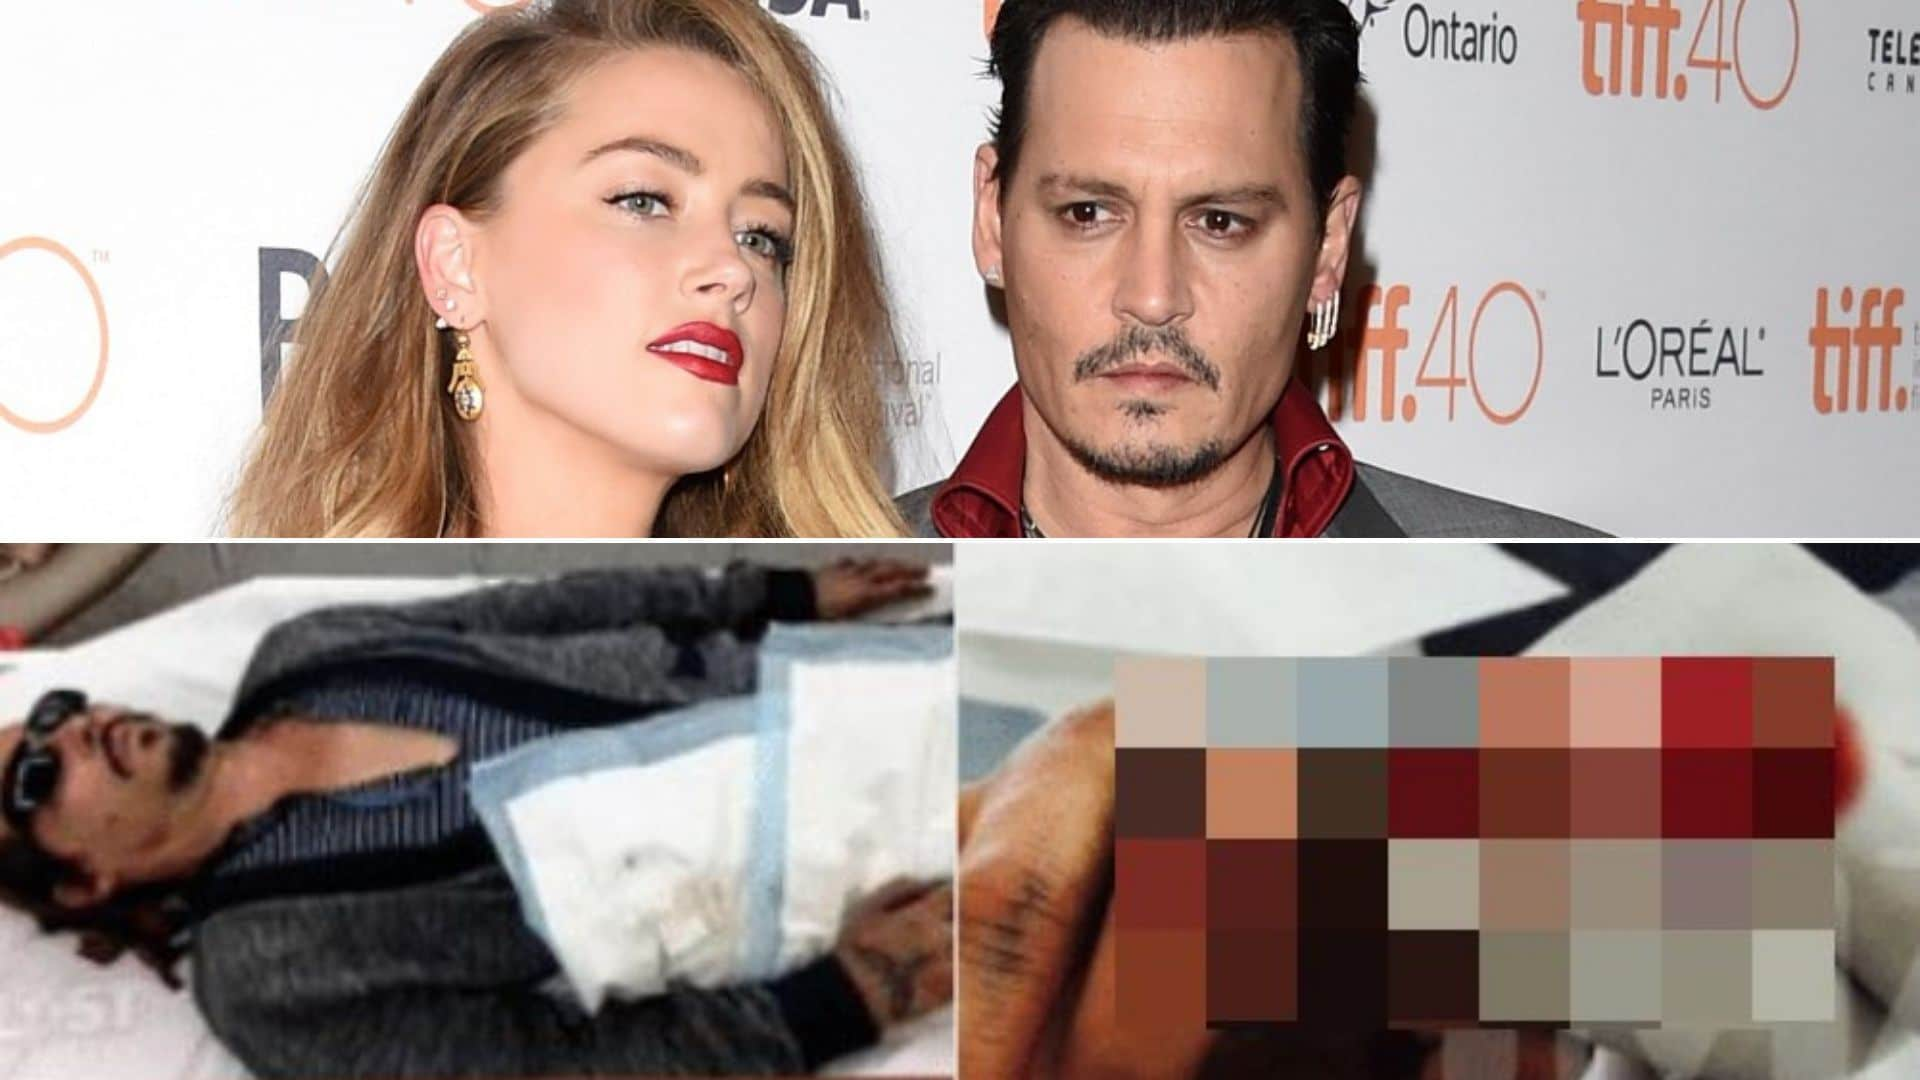 Johnny Depp all'ex moglie Amber Heard, tra accuse reciproche di botte, violenze